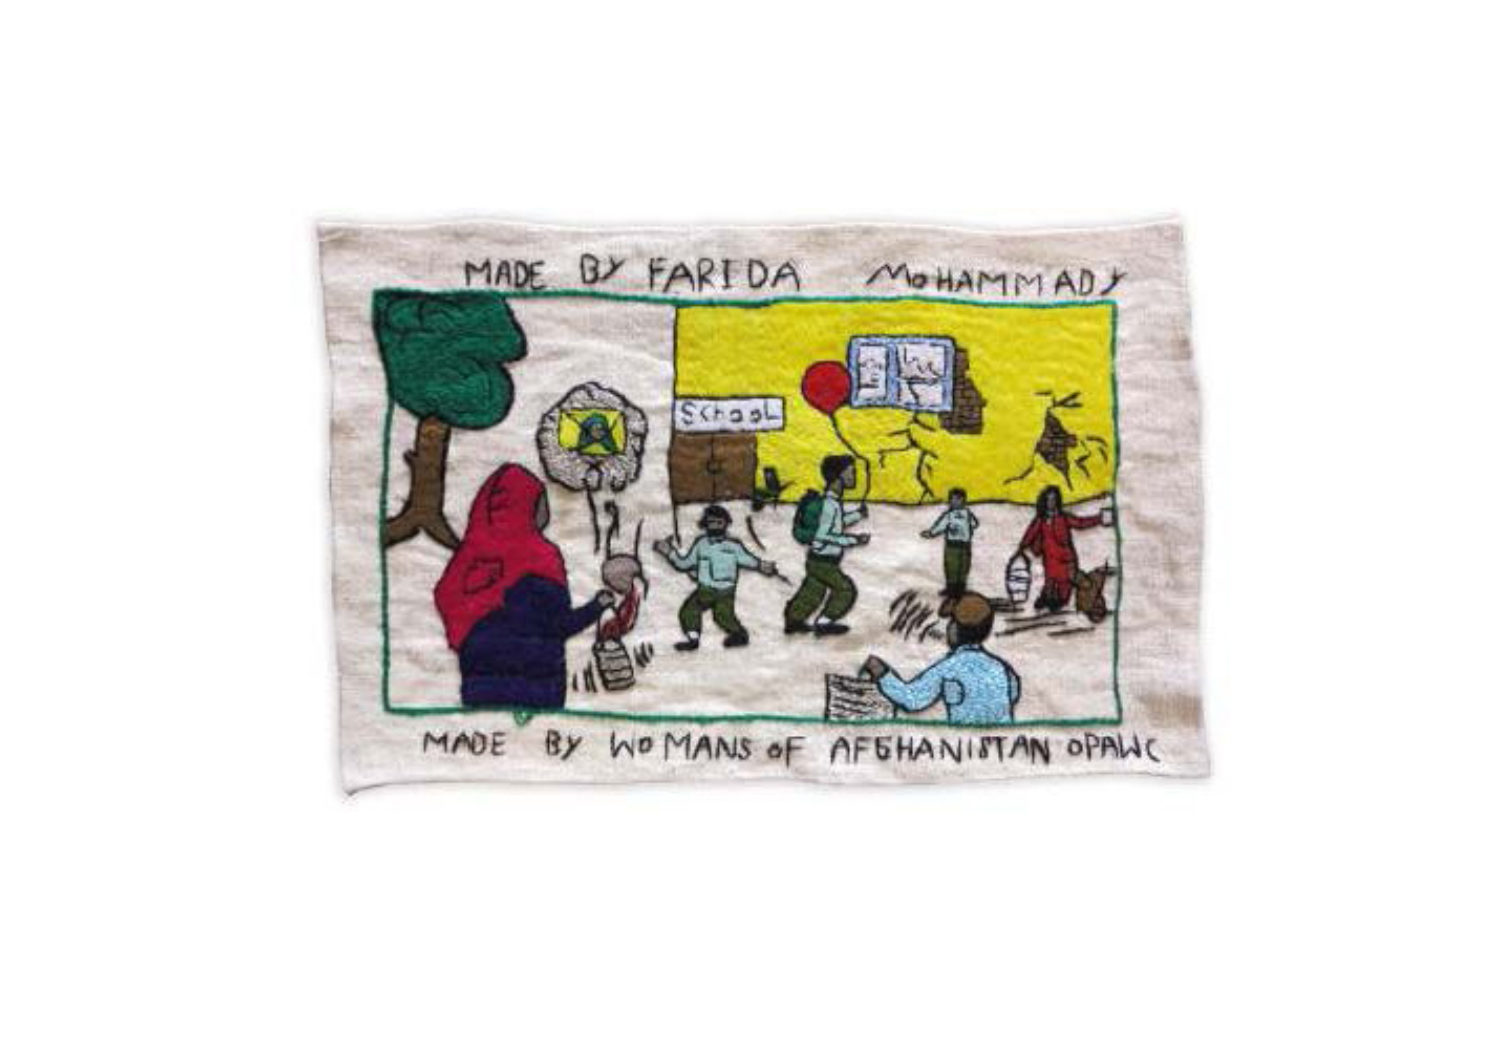 Farida draws the image of a street girl watching at the boys' school. She said boys are lucky here, they have chance to go to school without any fear, even if their school is destroyed. She hopes that girls find the same chance.